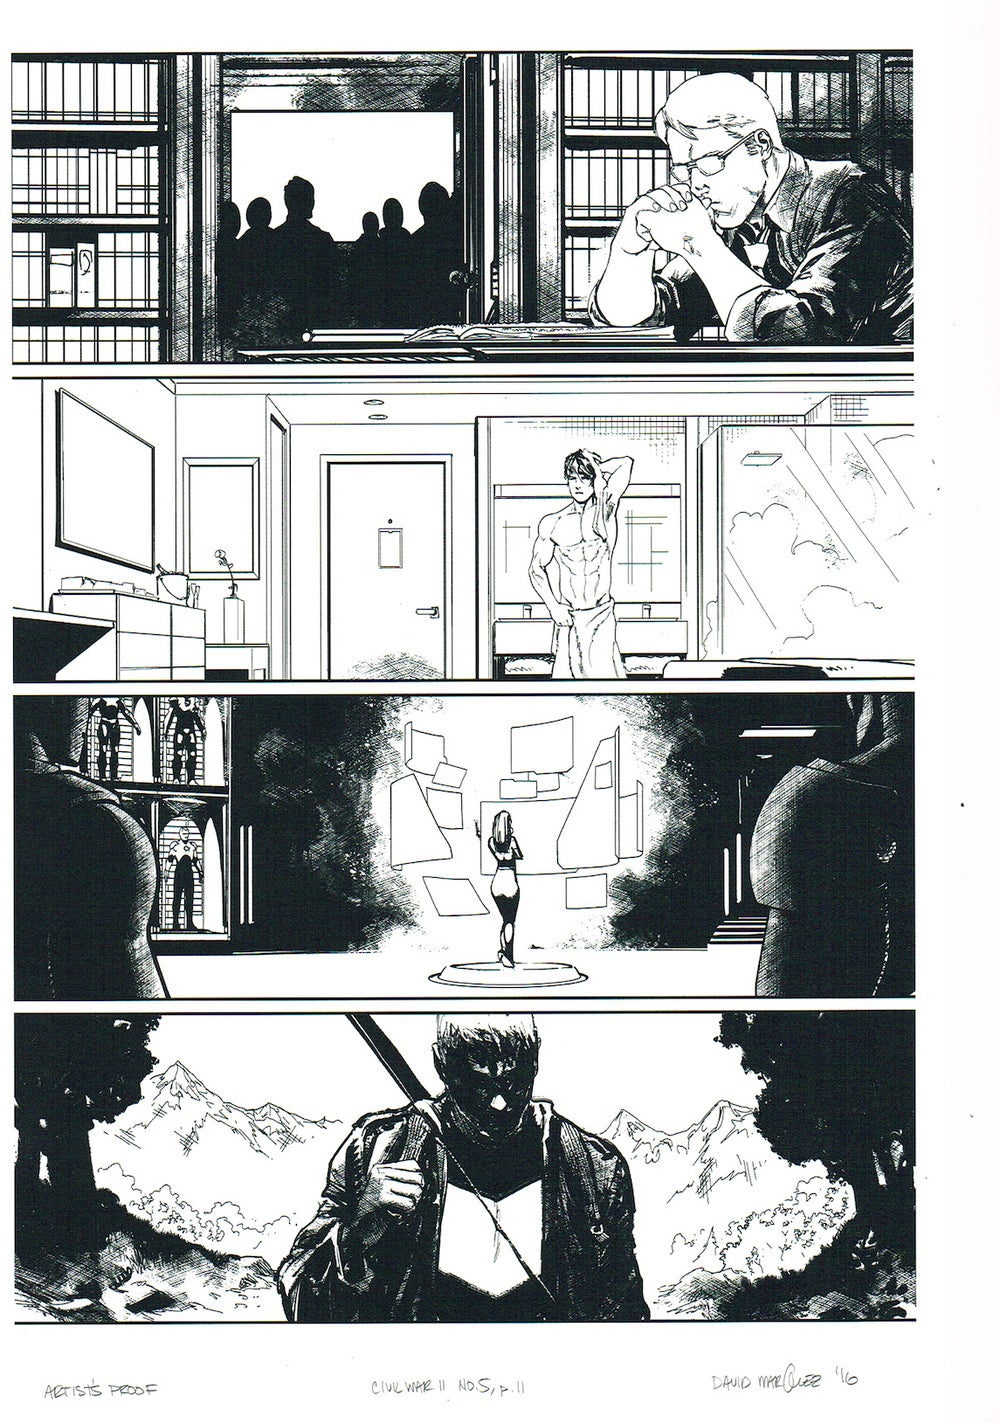 Image of CIVIL WAR II #5, p.11 ARTIST'S PROOF